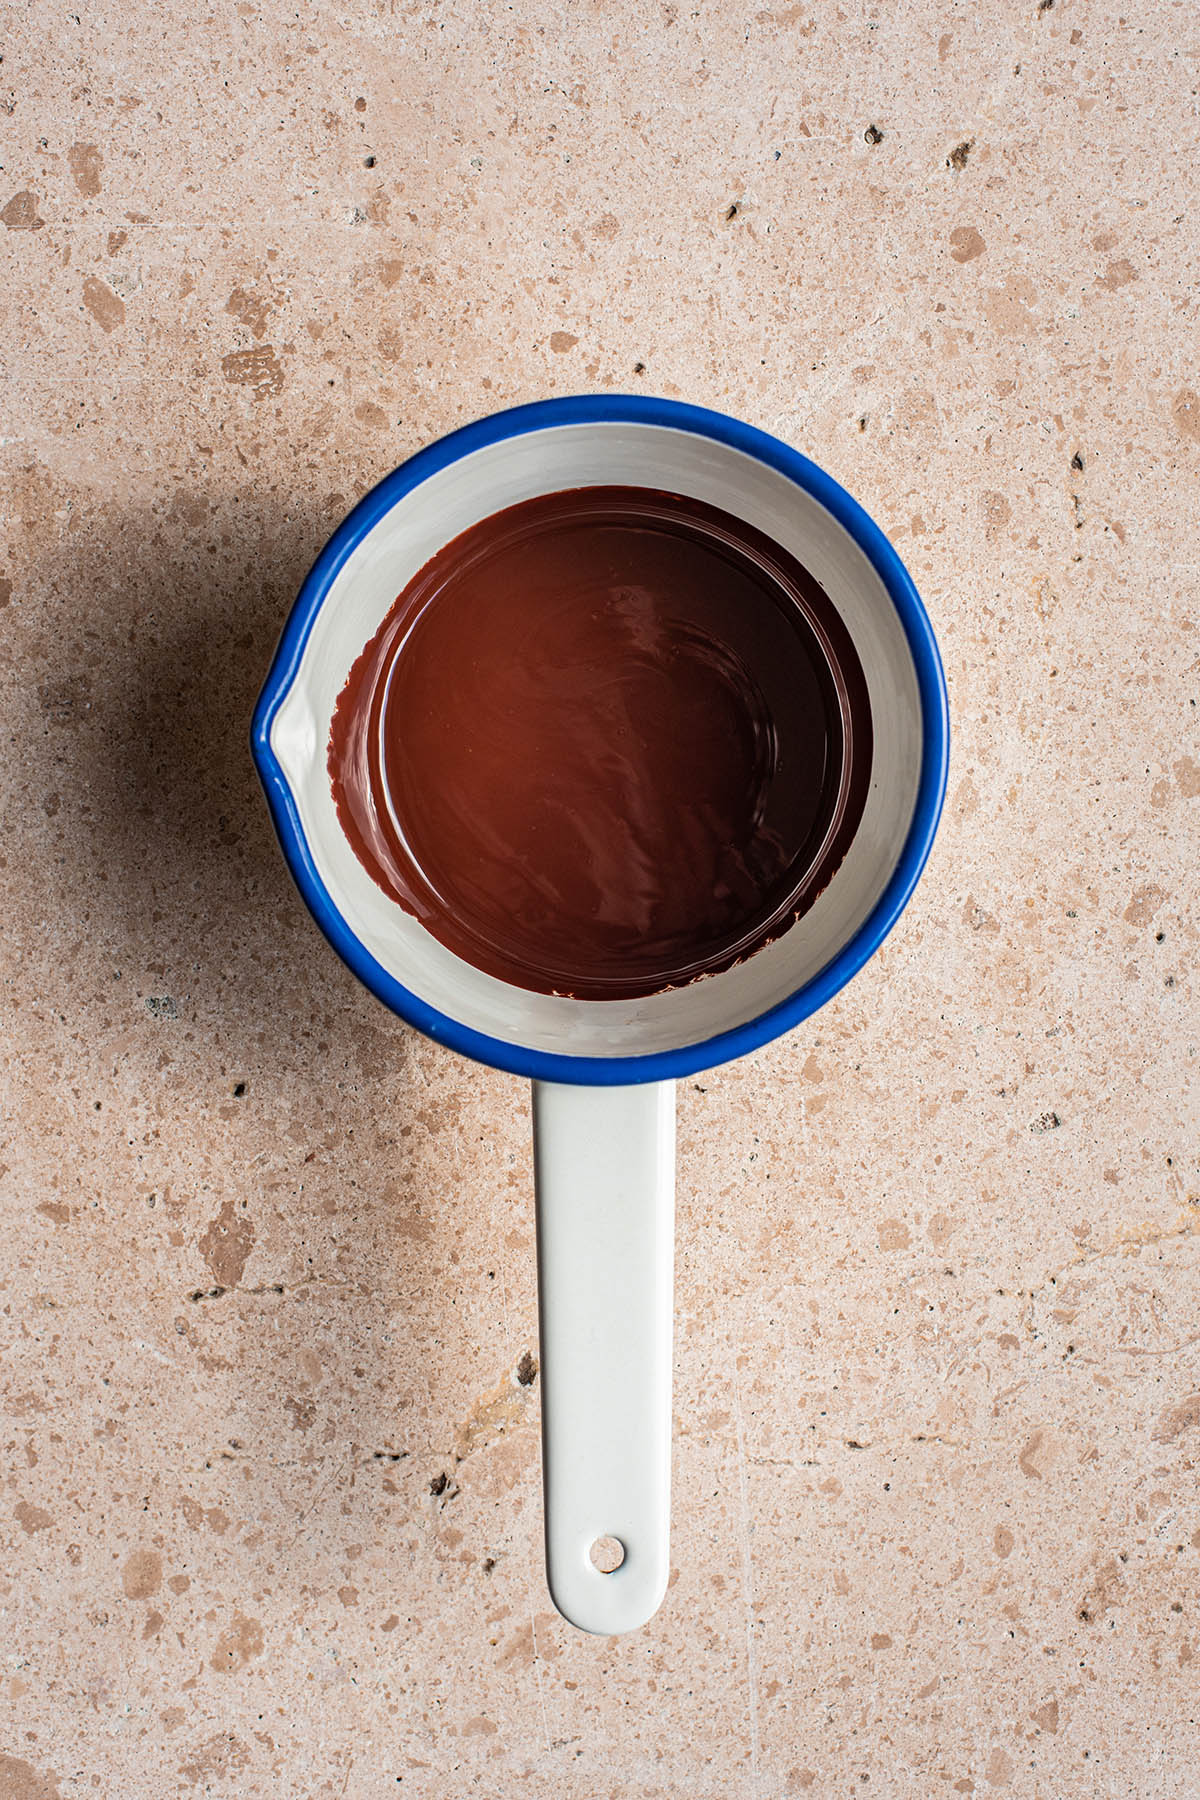 Small enamel saucepan filled with melted chocolate.